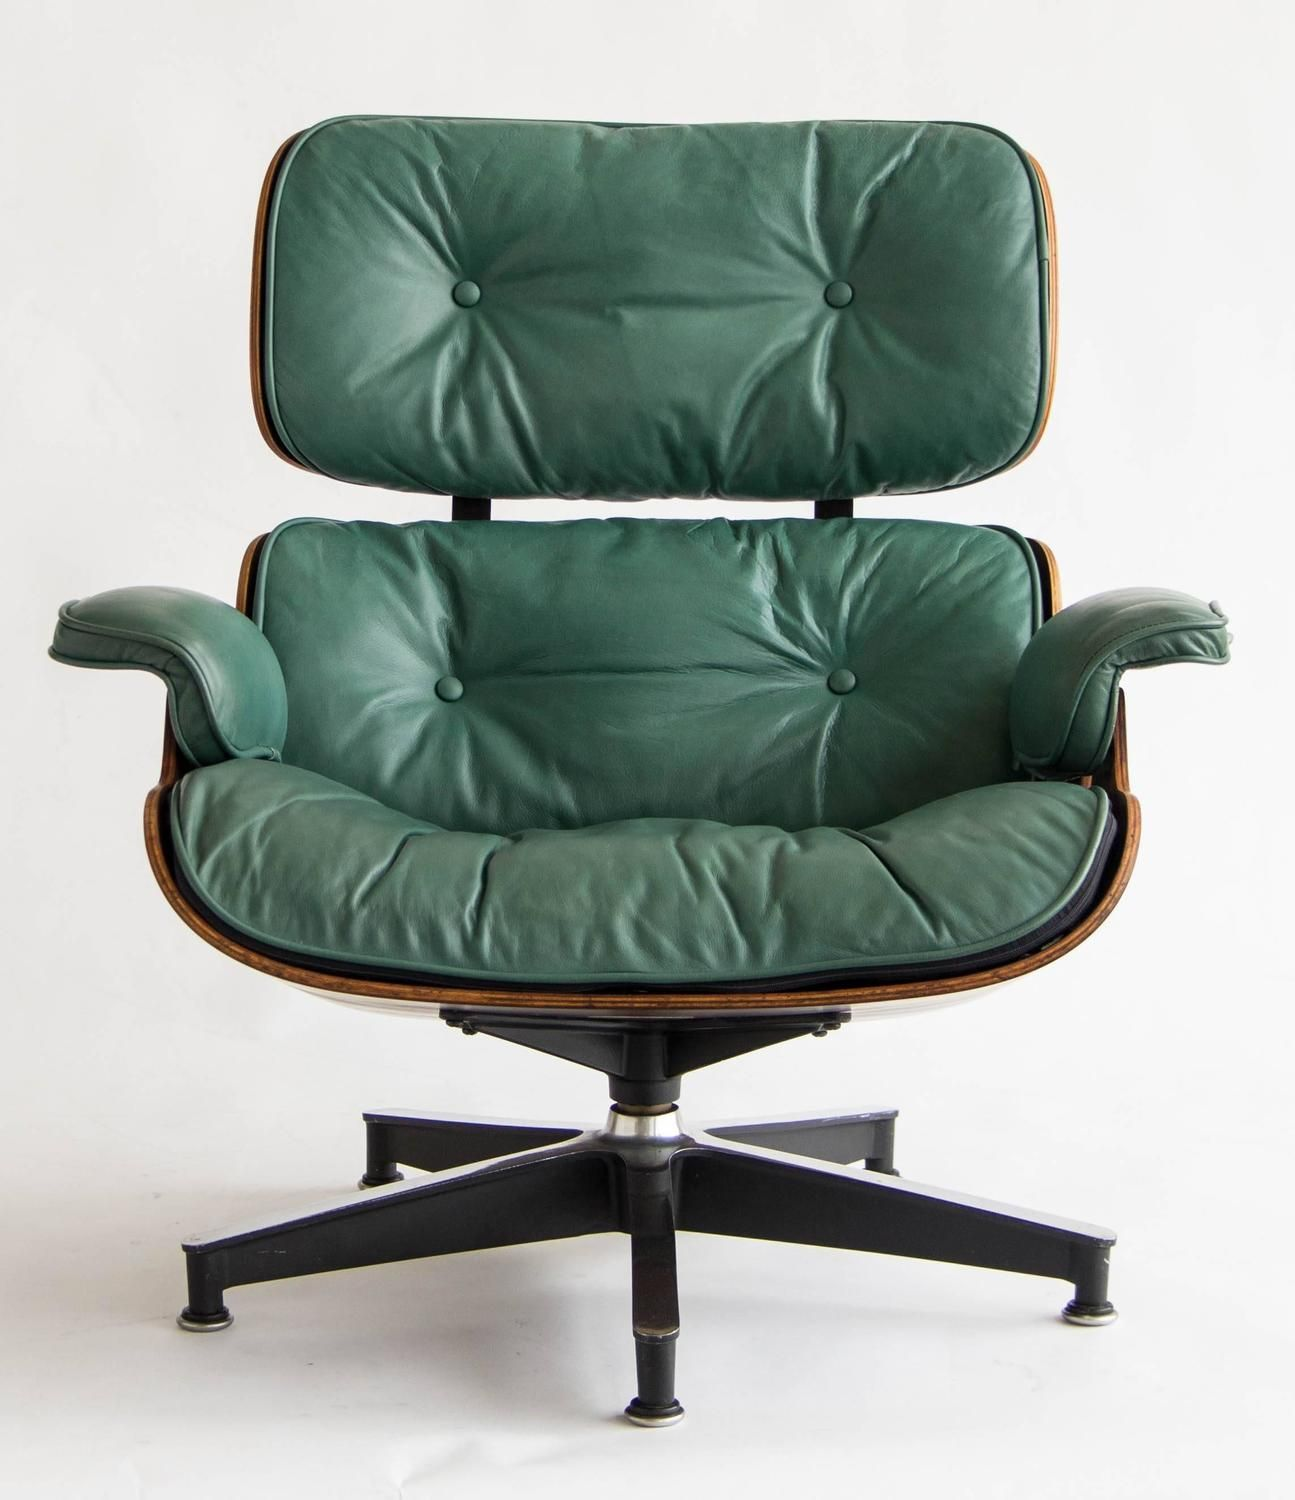 Miraculous Early Special Order Green Leather Rosewood Eames Lounge Uwap Interior Chair Design Uwaporg